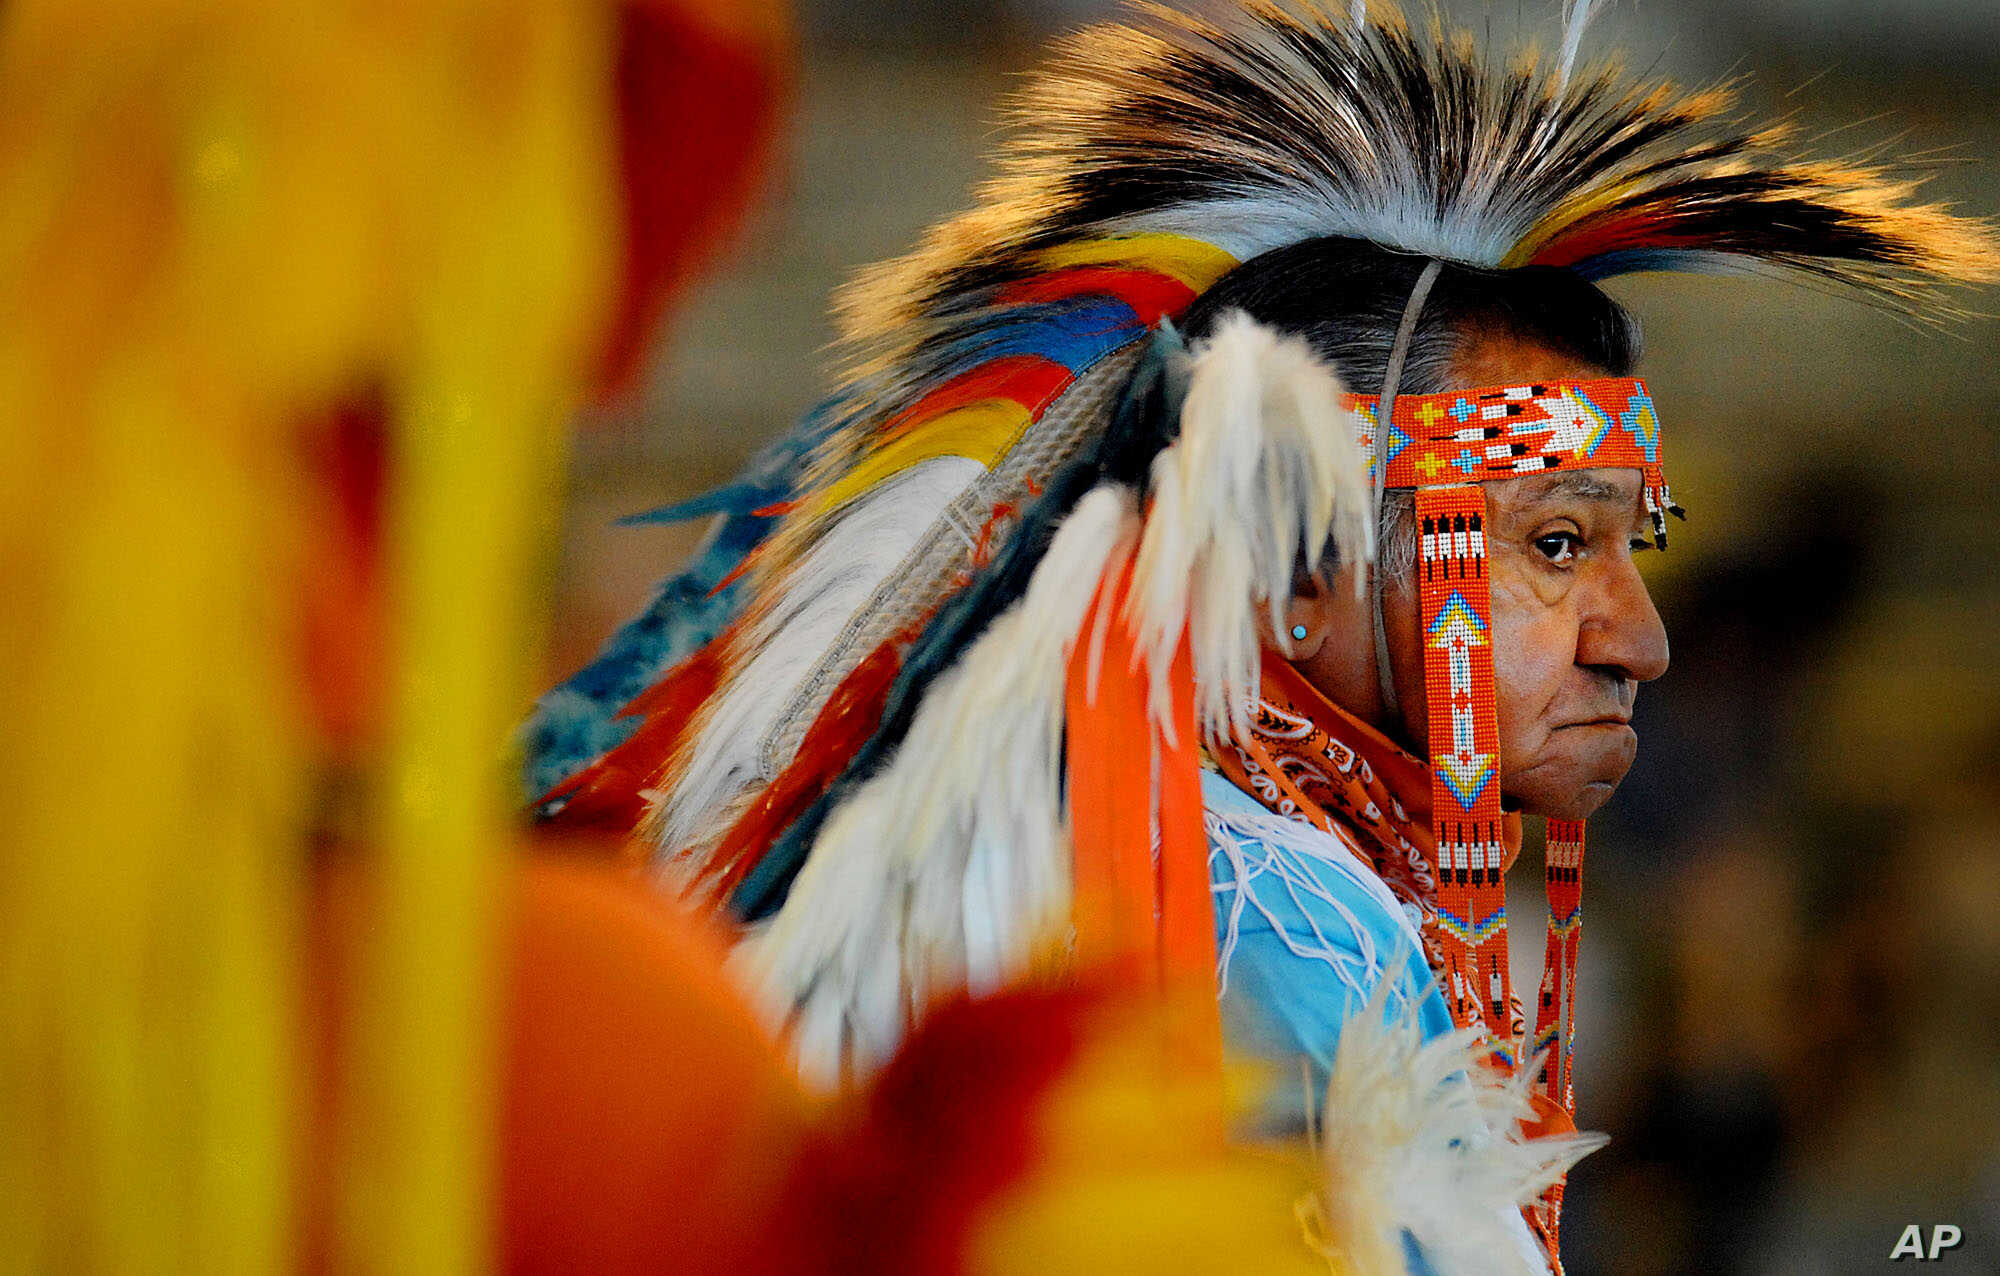 Native Americans Call For Rethink of Bering Strait Theory